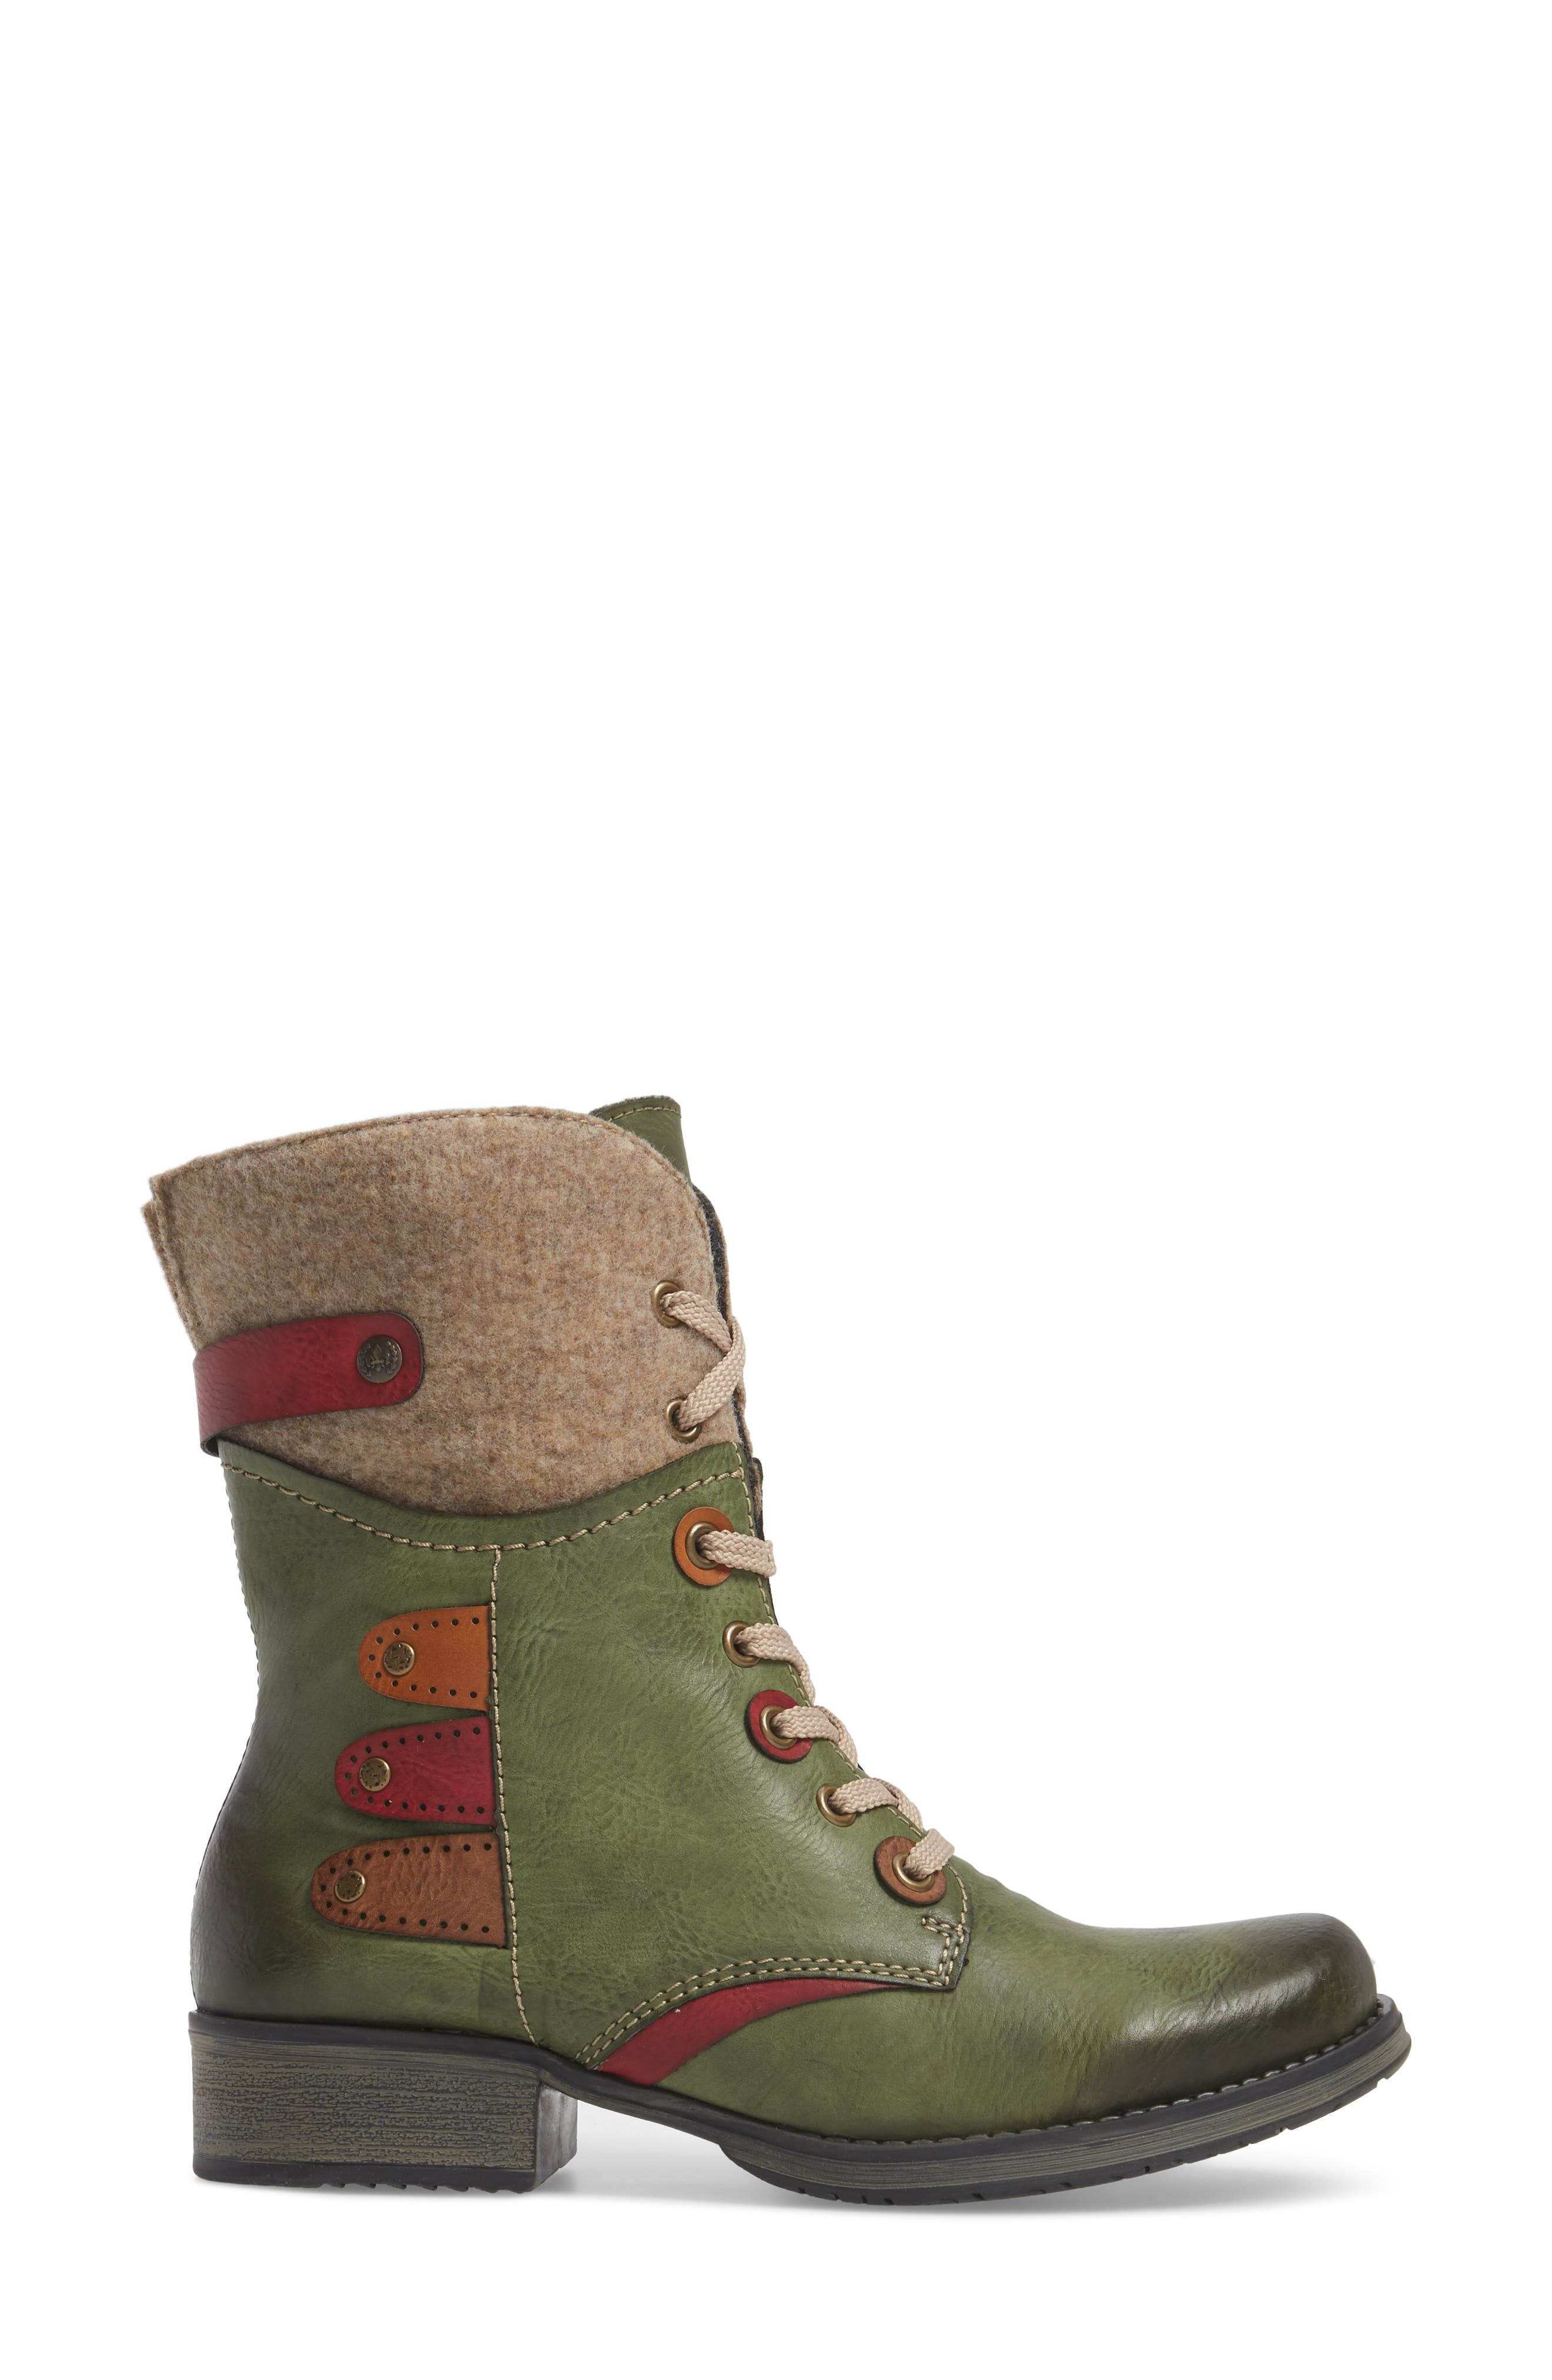 Fergie 43 Lace-Up Boot,                             Alternate thumbnail 3, color,                             Leaf Faux Leather